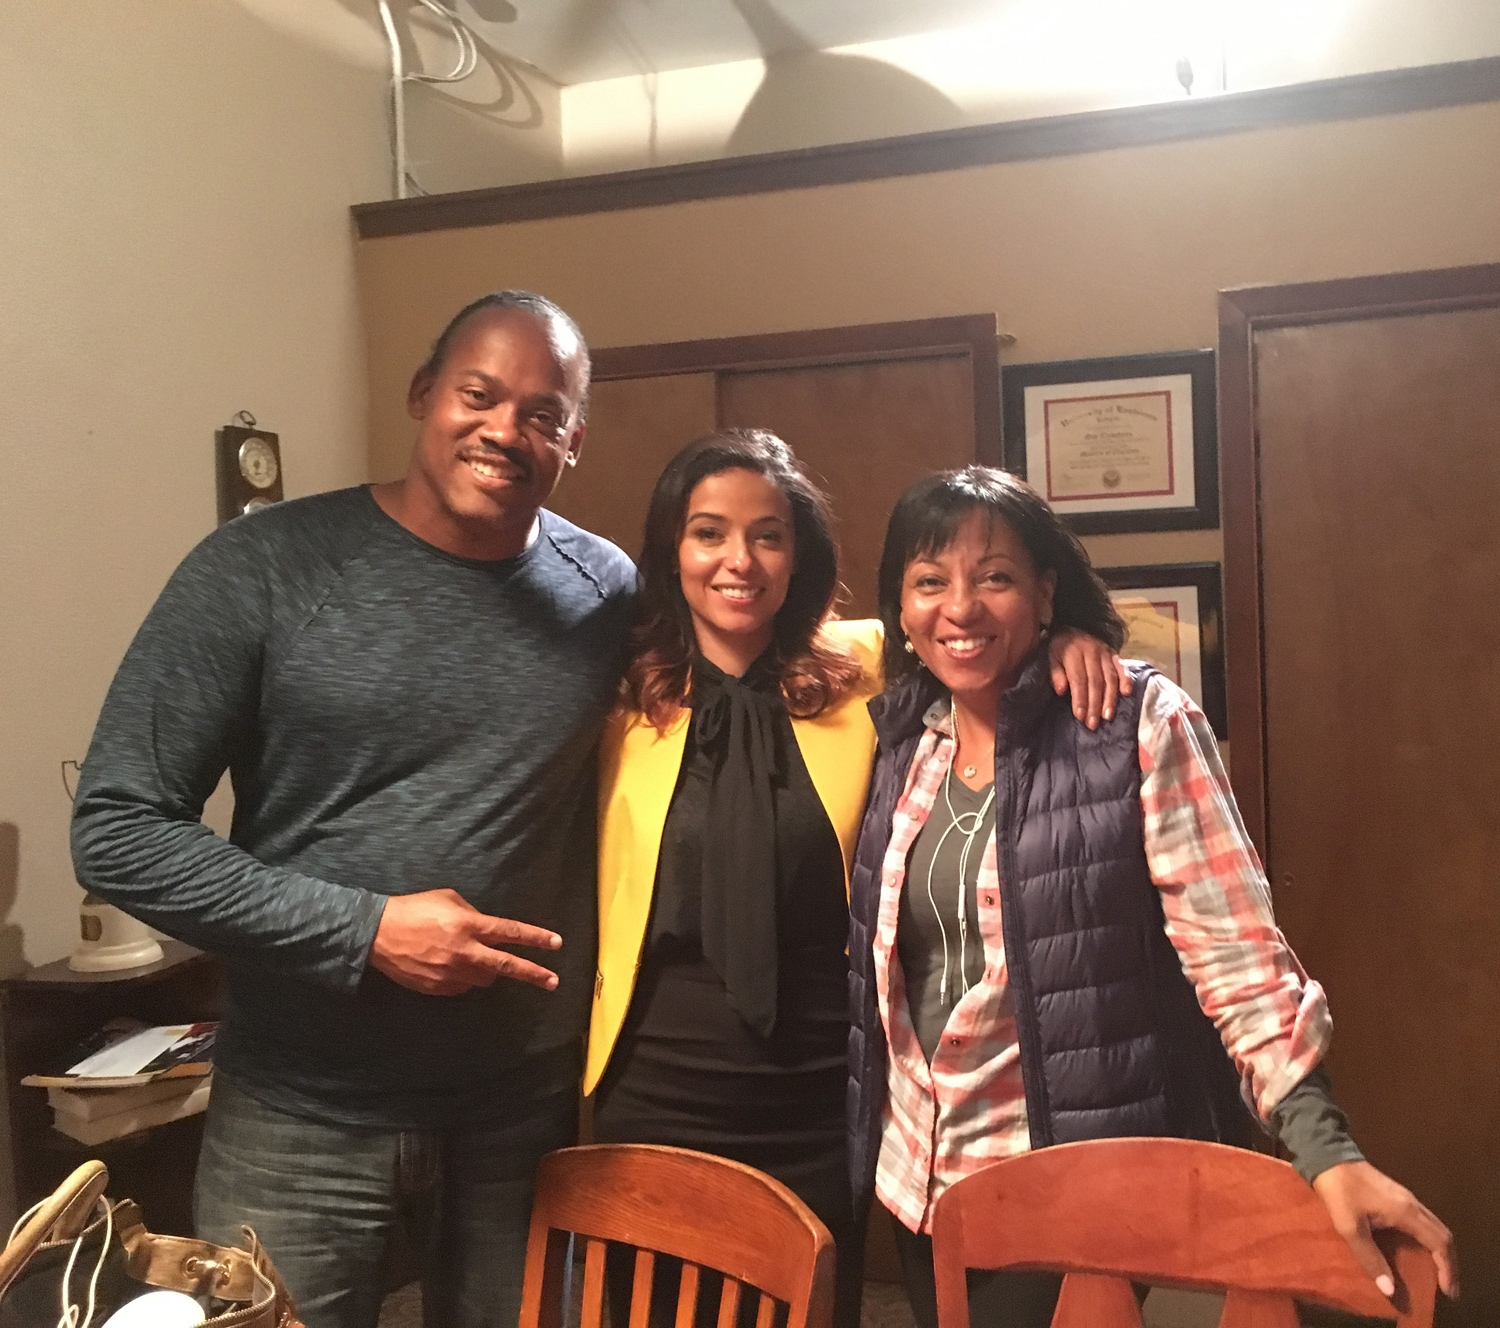 Director_Greg_Carter_Actress_Meta_Golding_Mrs._Banks_and_Producer_Dominique_Telson.jpg